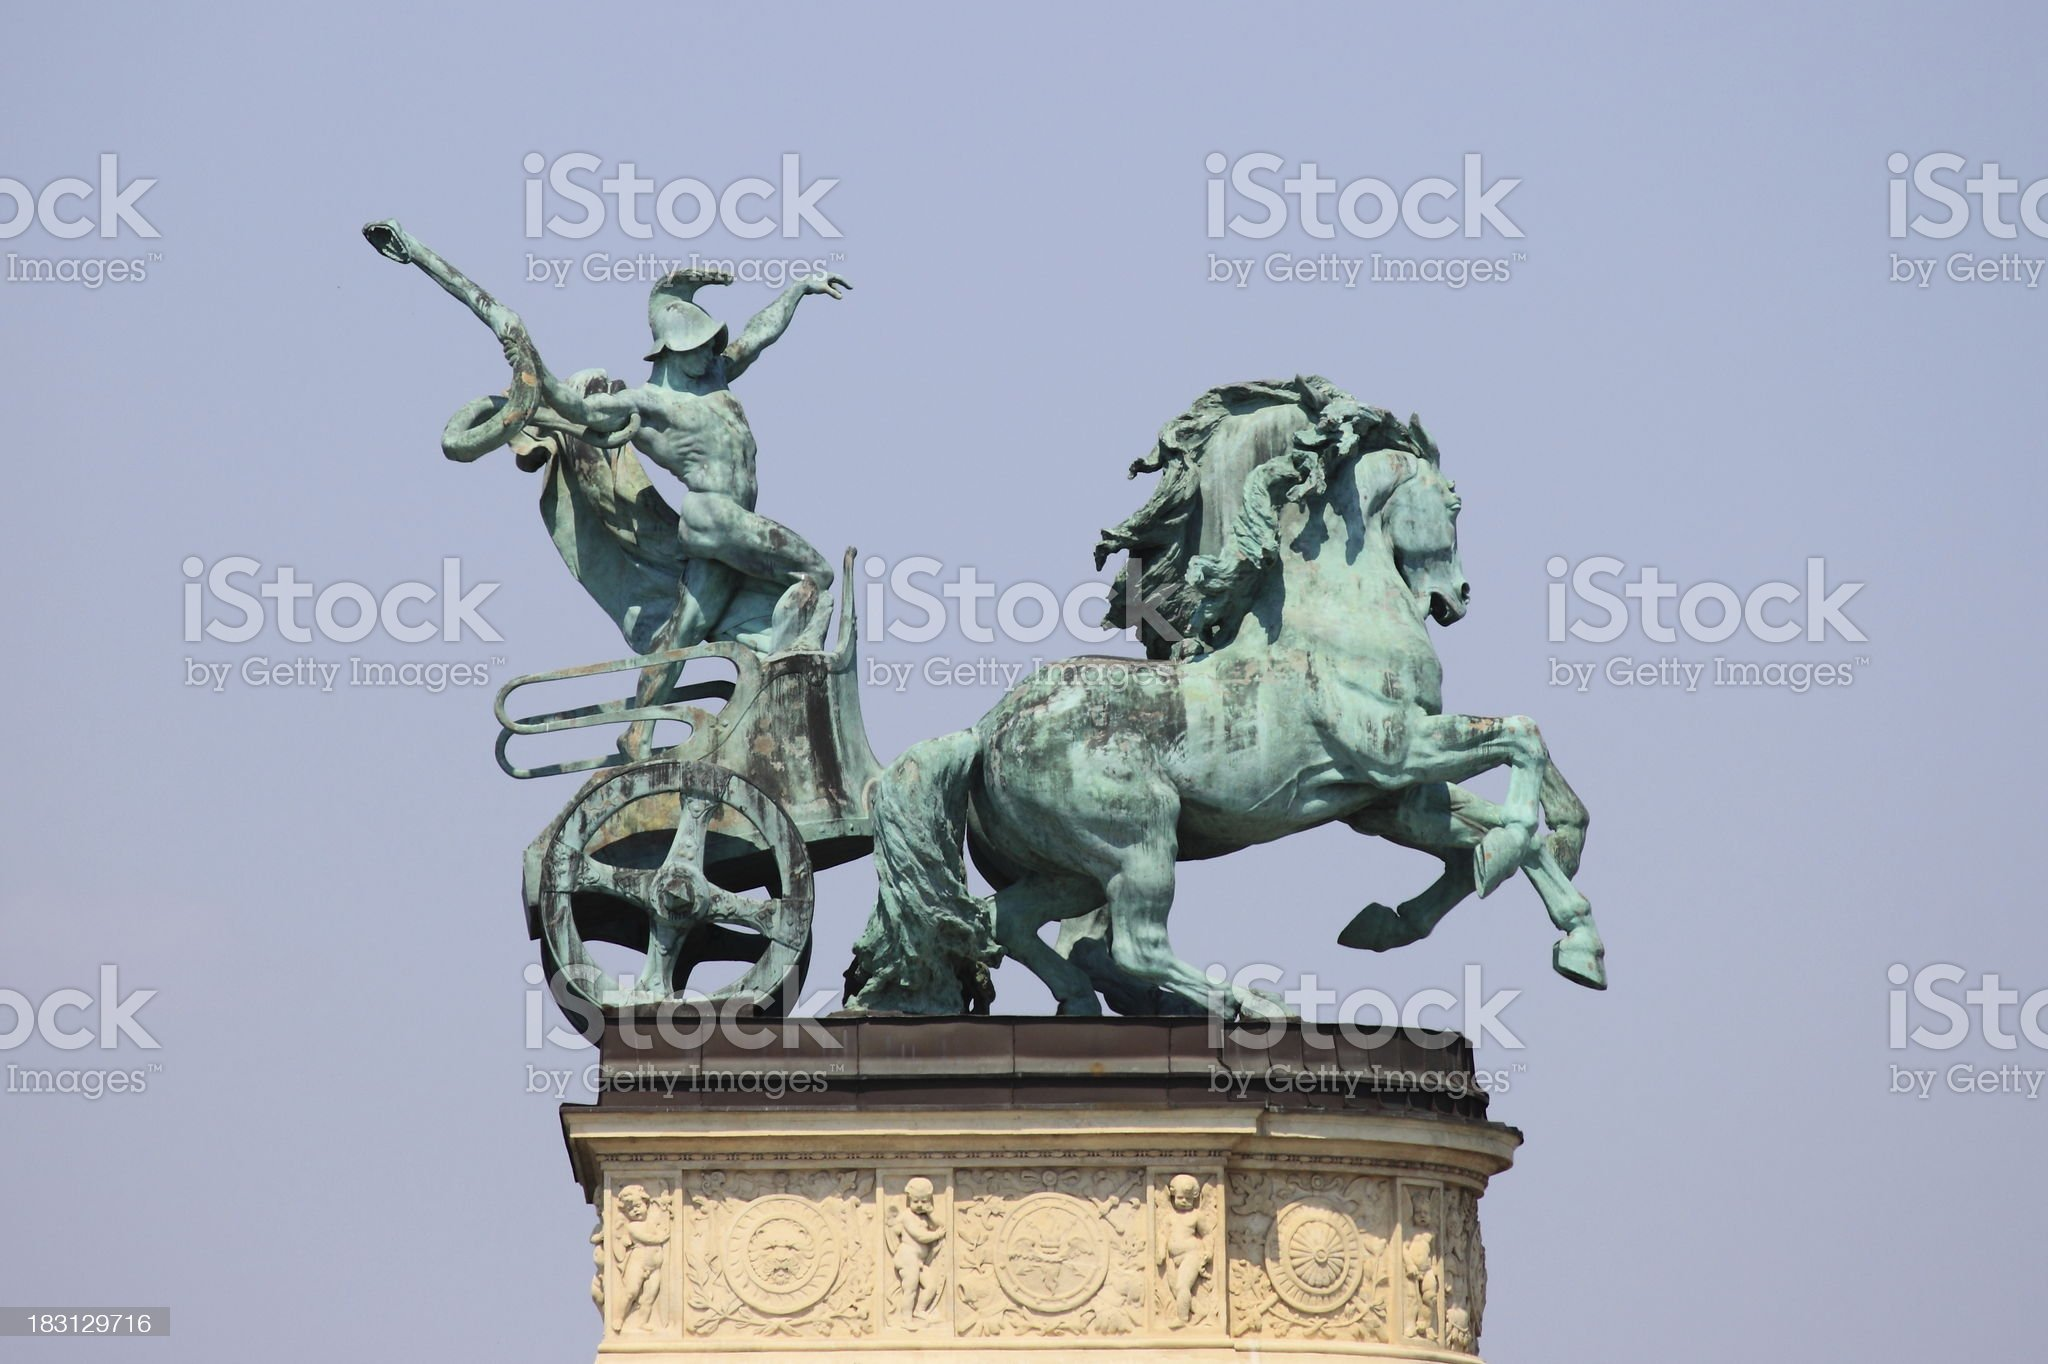 Allegorical statue of War royalty-free stock photo